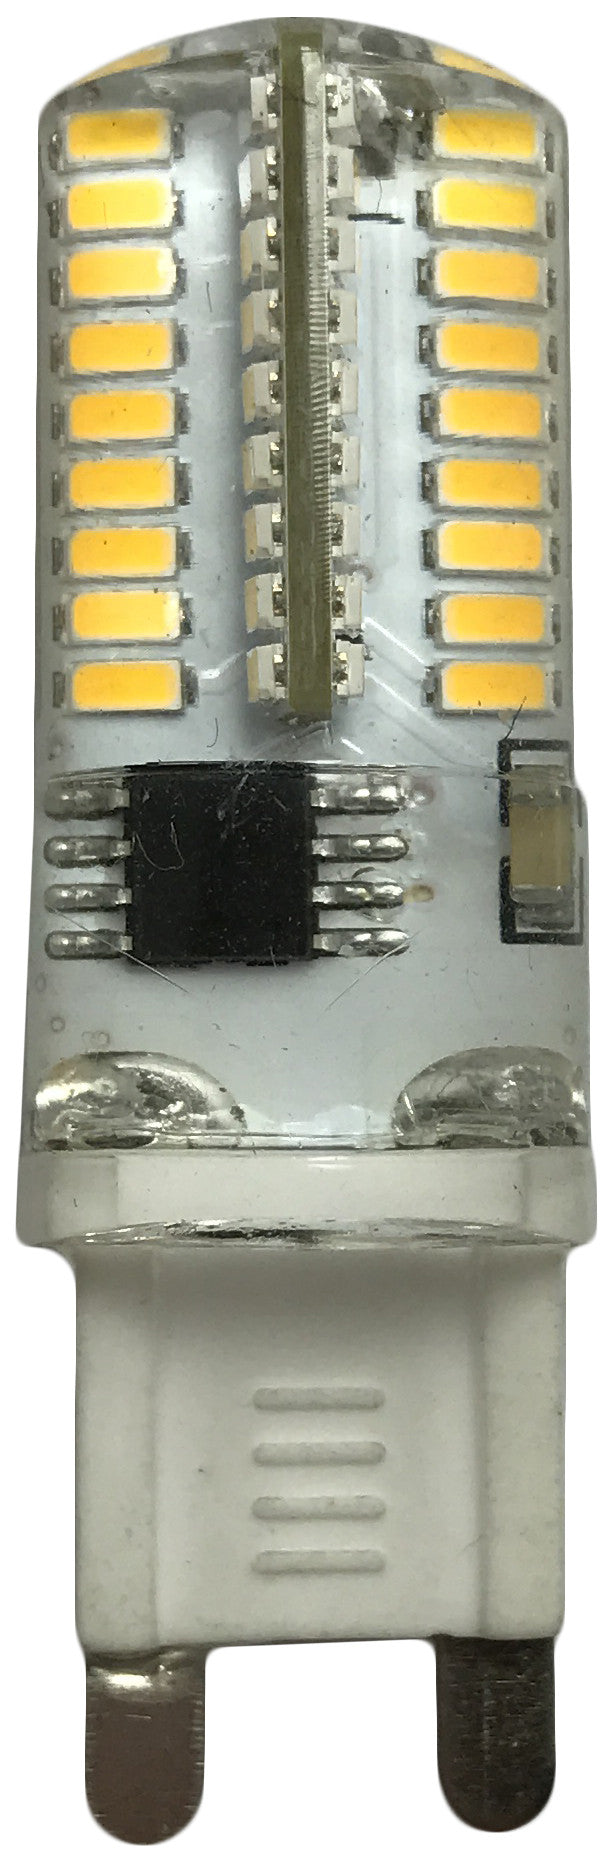 161155 - Specific LED G9 3W 3000K 220Lm